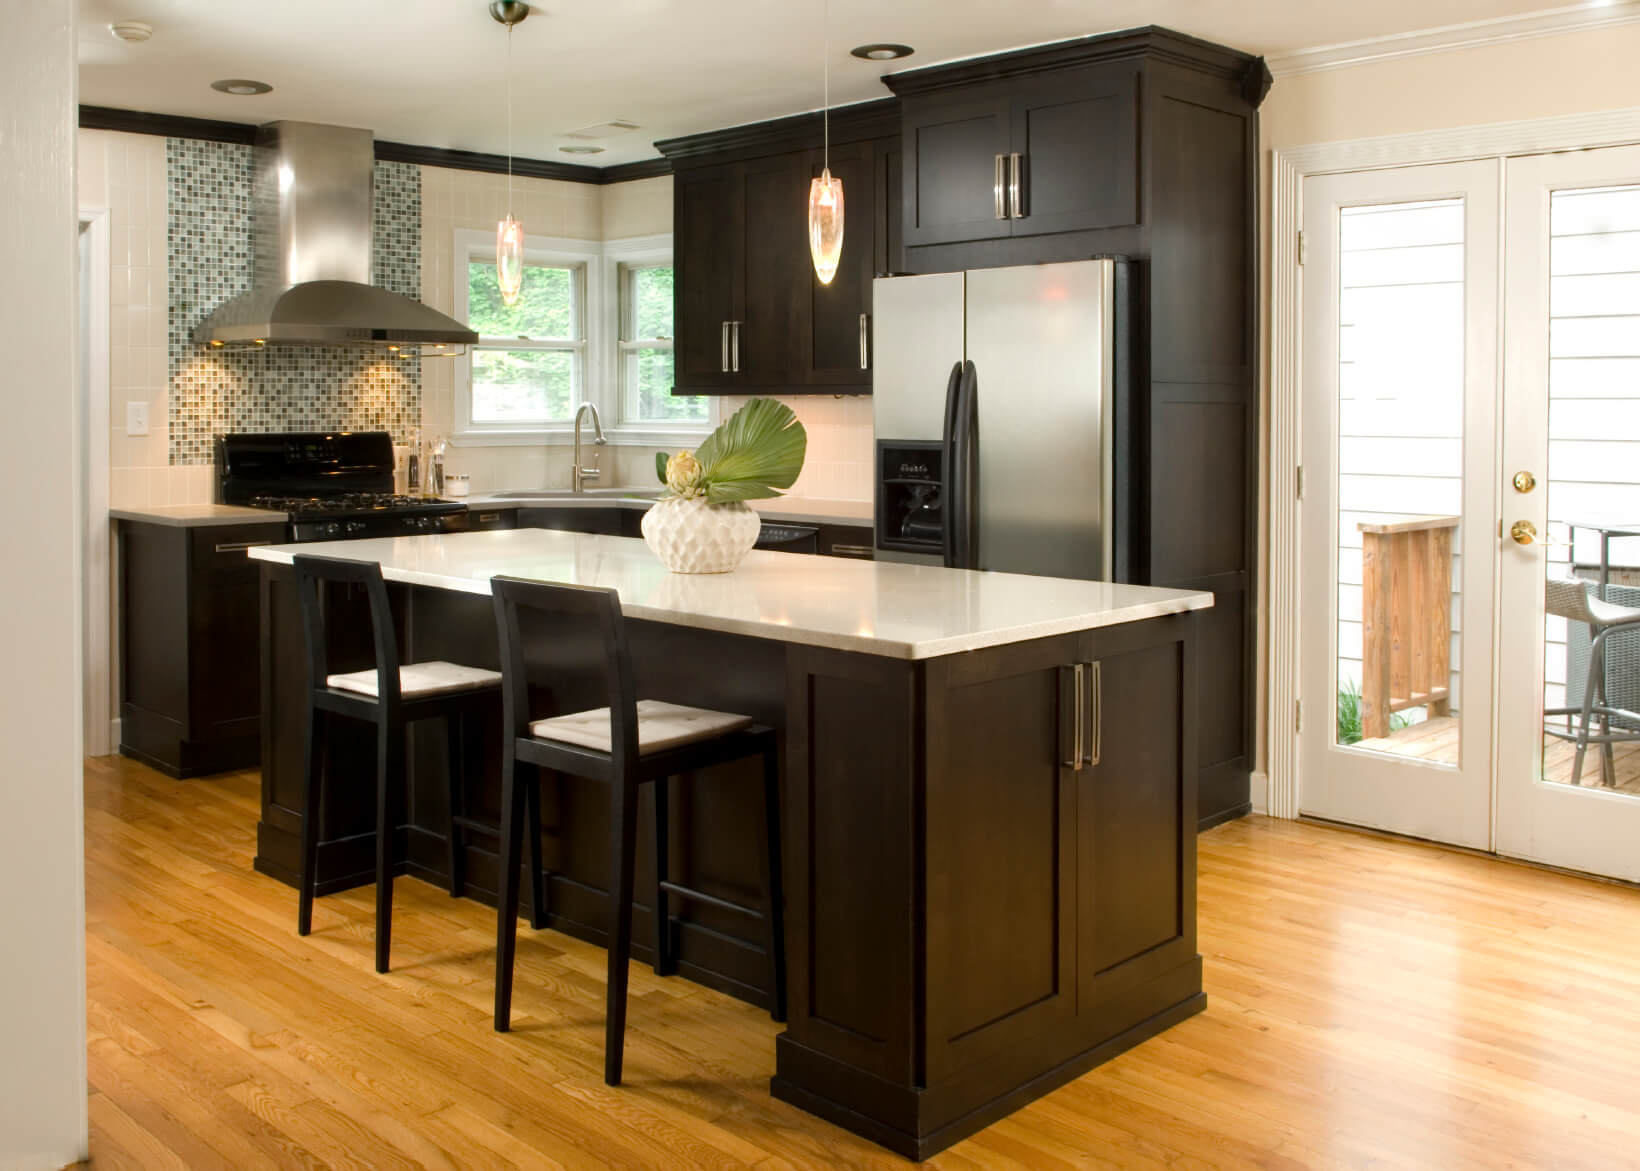 High Contrast White Wall Kitchen With Dark Wood Paneling And Cupboards Paired Countertops